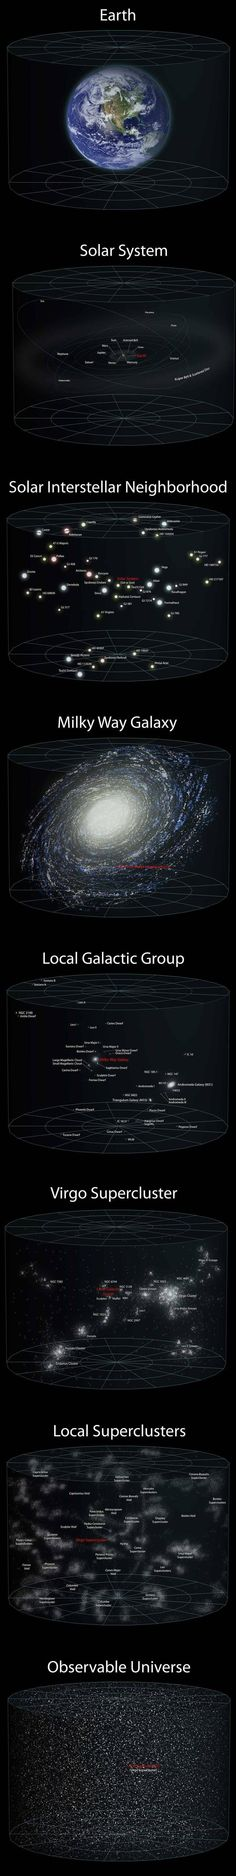 The vastness of our universe and perspective -